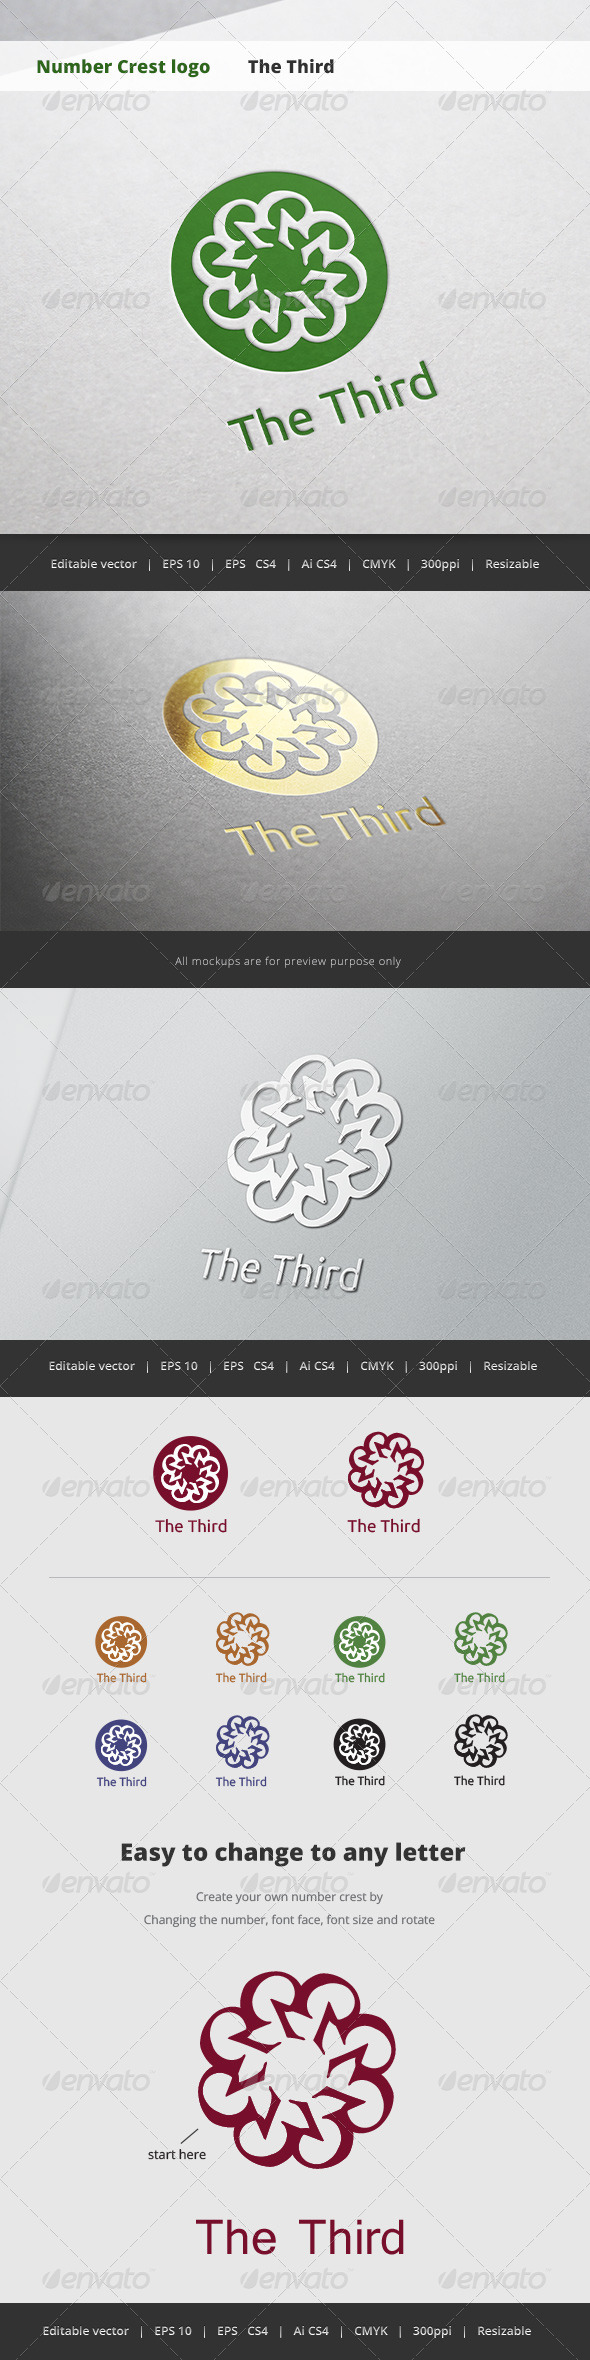 GraphicRiver The Third Number Crest Logo 5718677